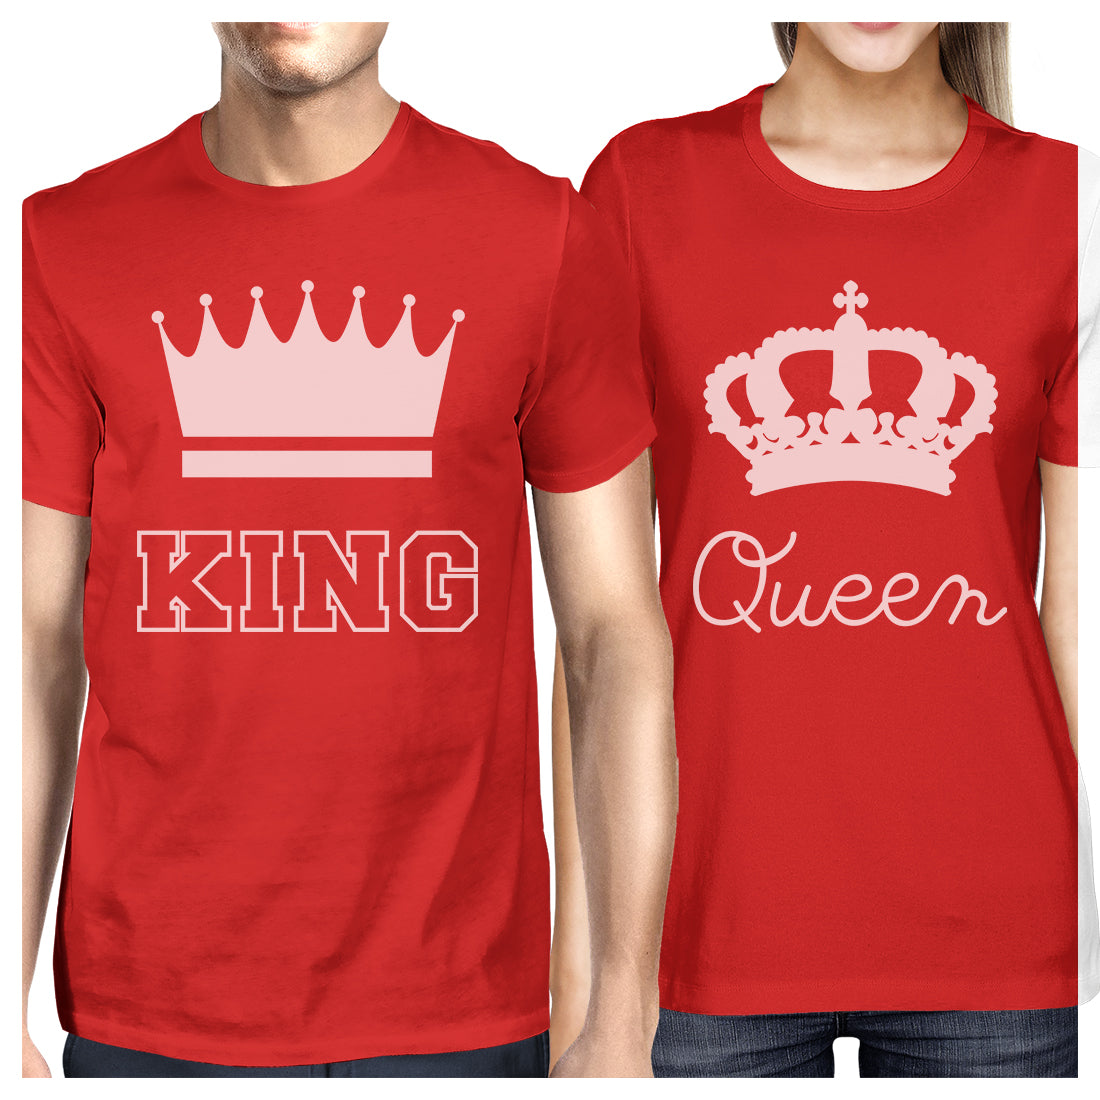 40cfc55e67 King And Queen Matching Couple Gift Shirts Red His and Hers Tshirts ...